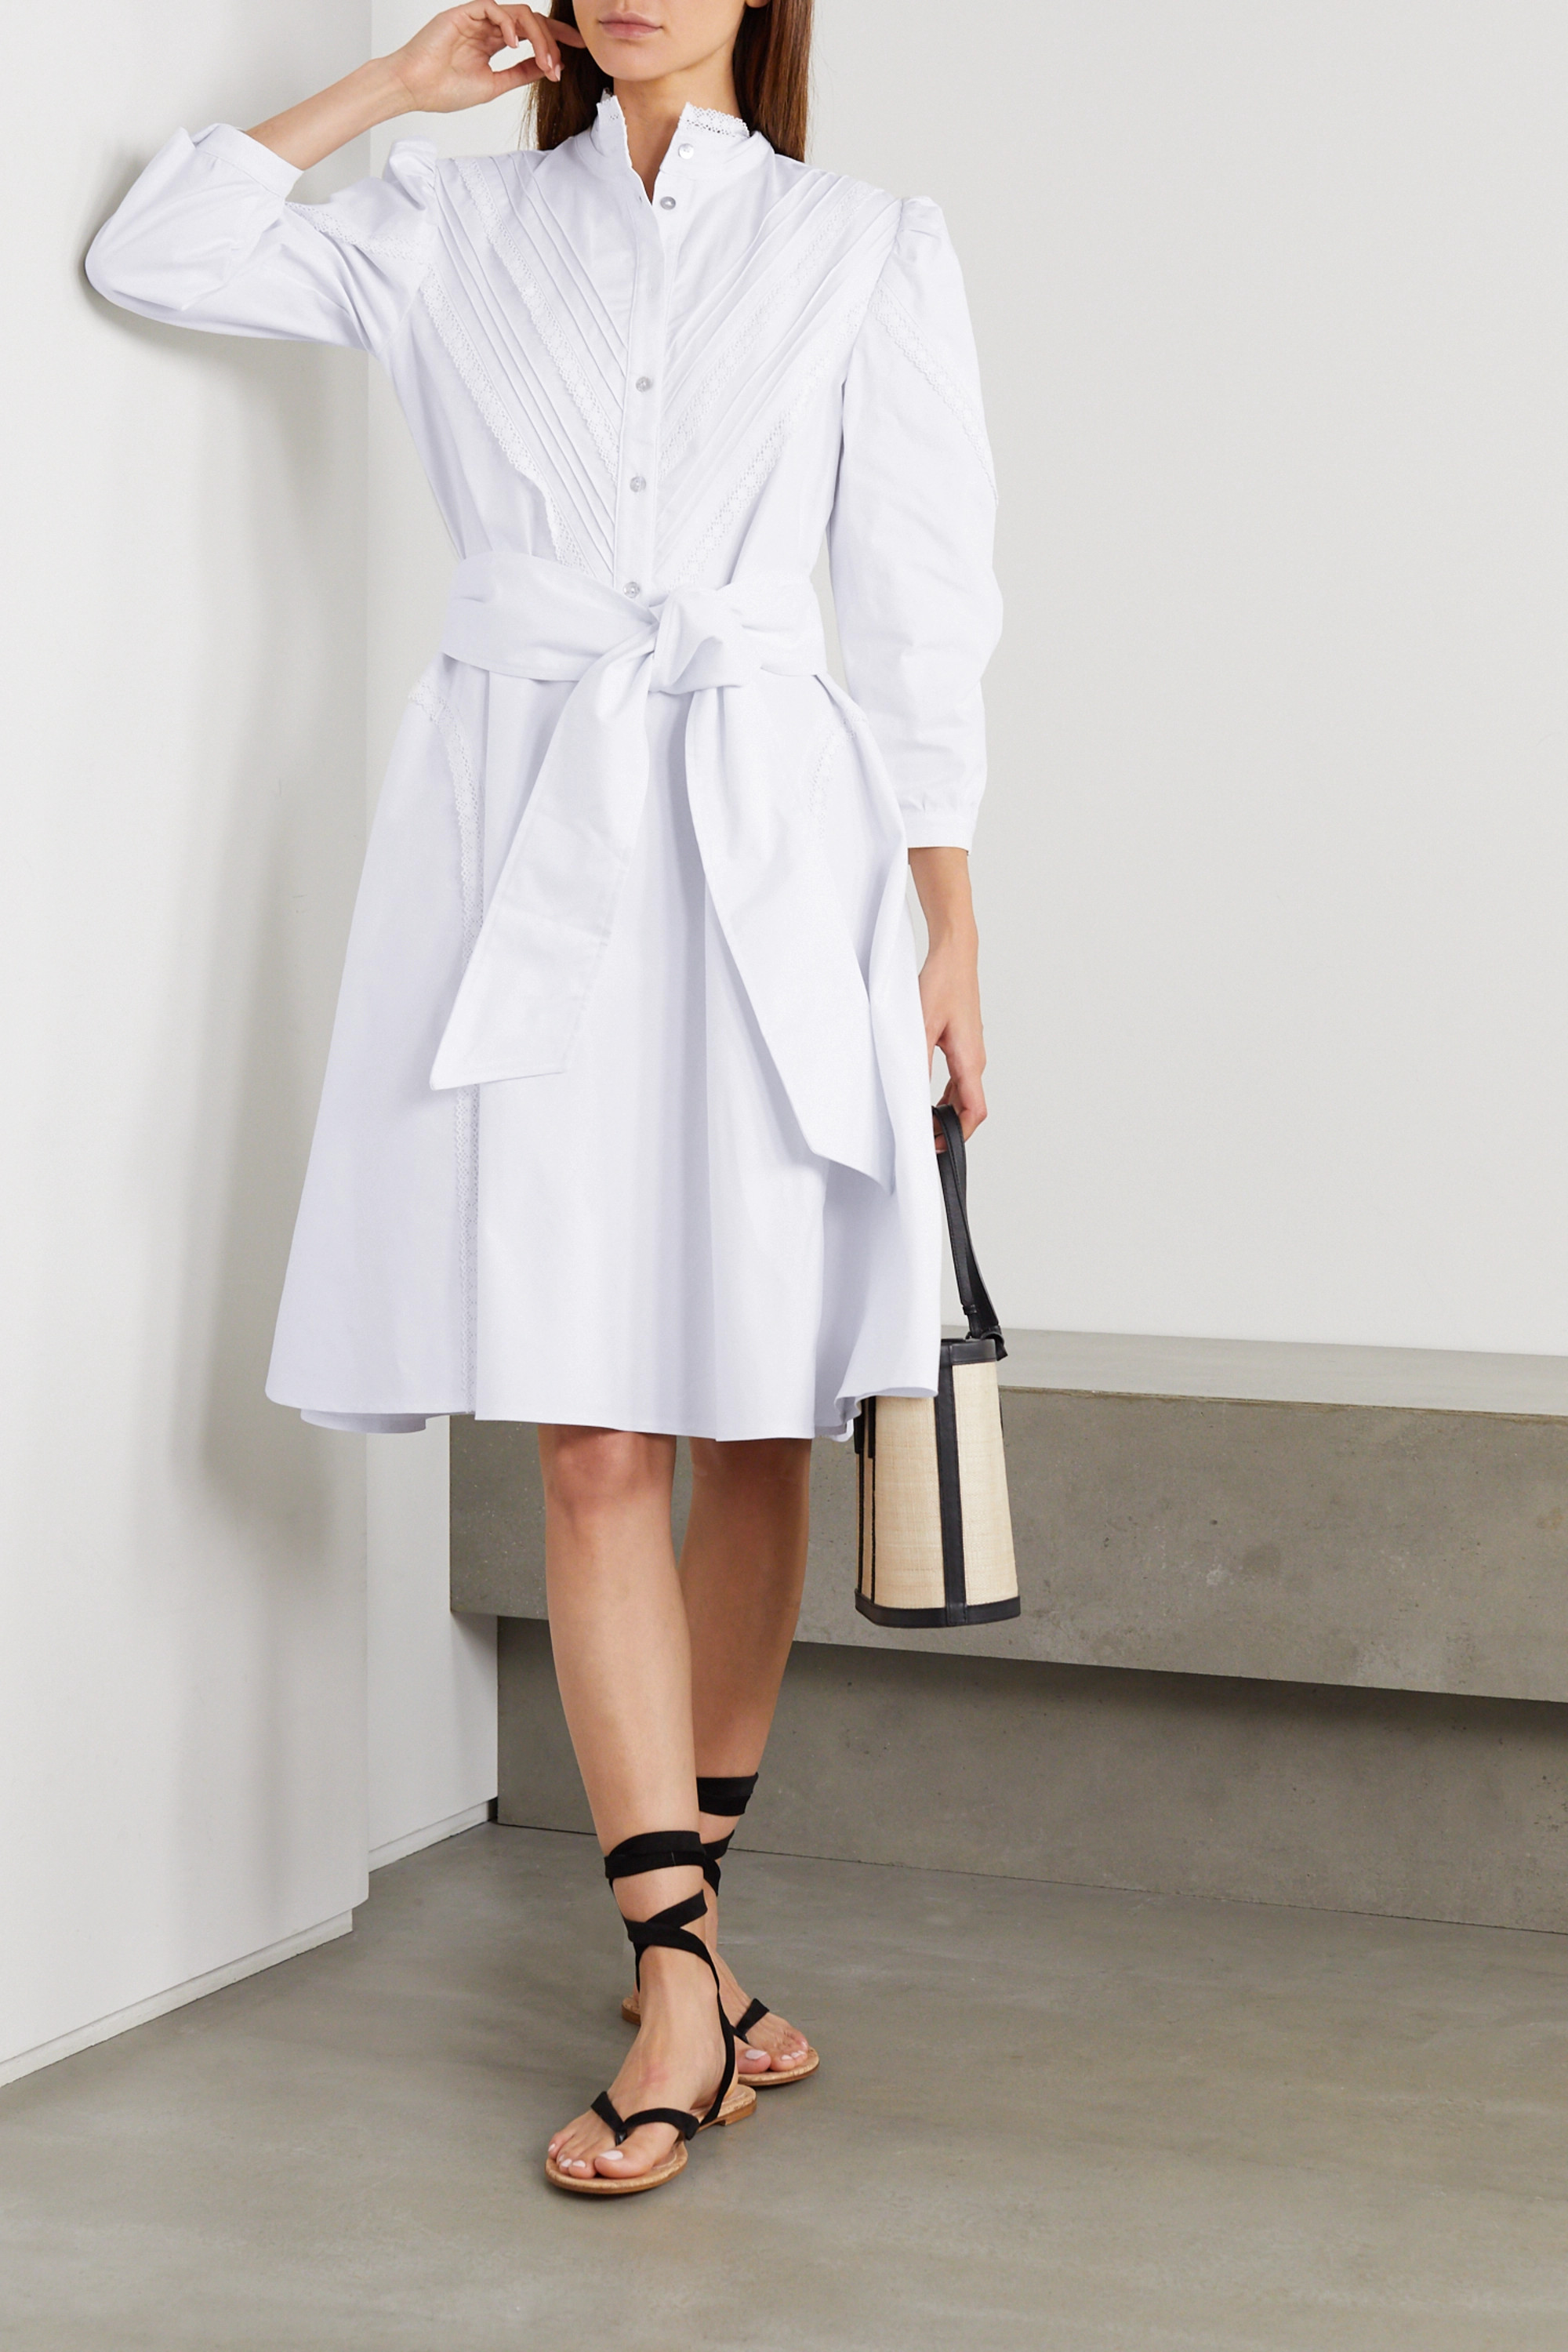 Àcheval Pampa Yegua belted crocheted lace-trimmed cotton-blend poplin dress